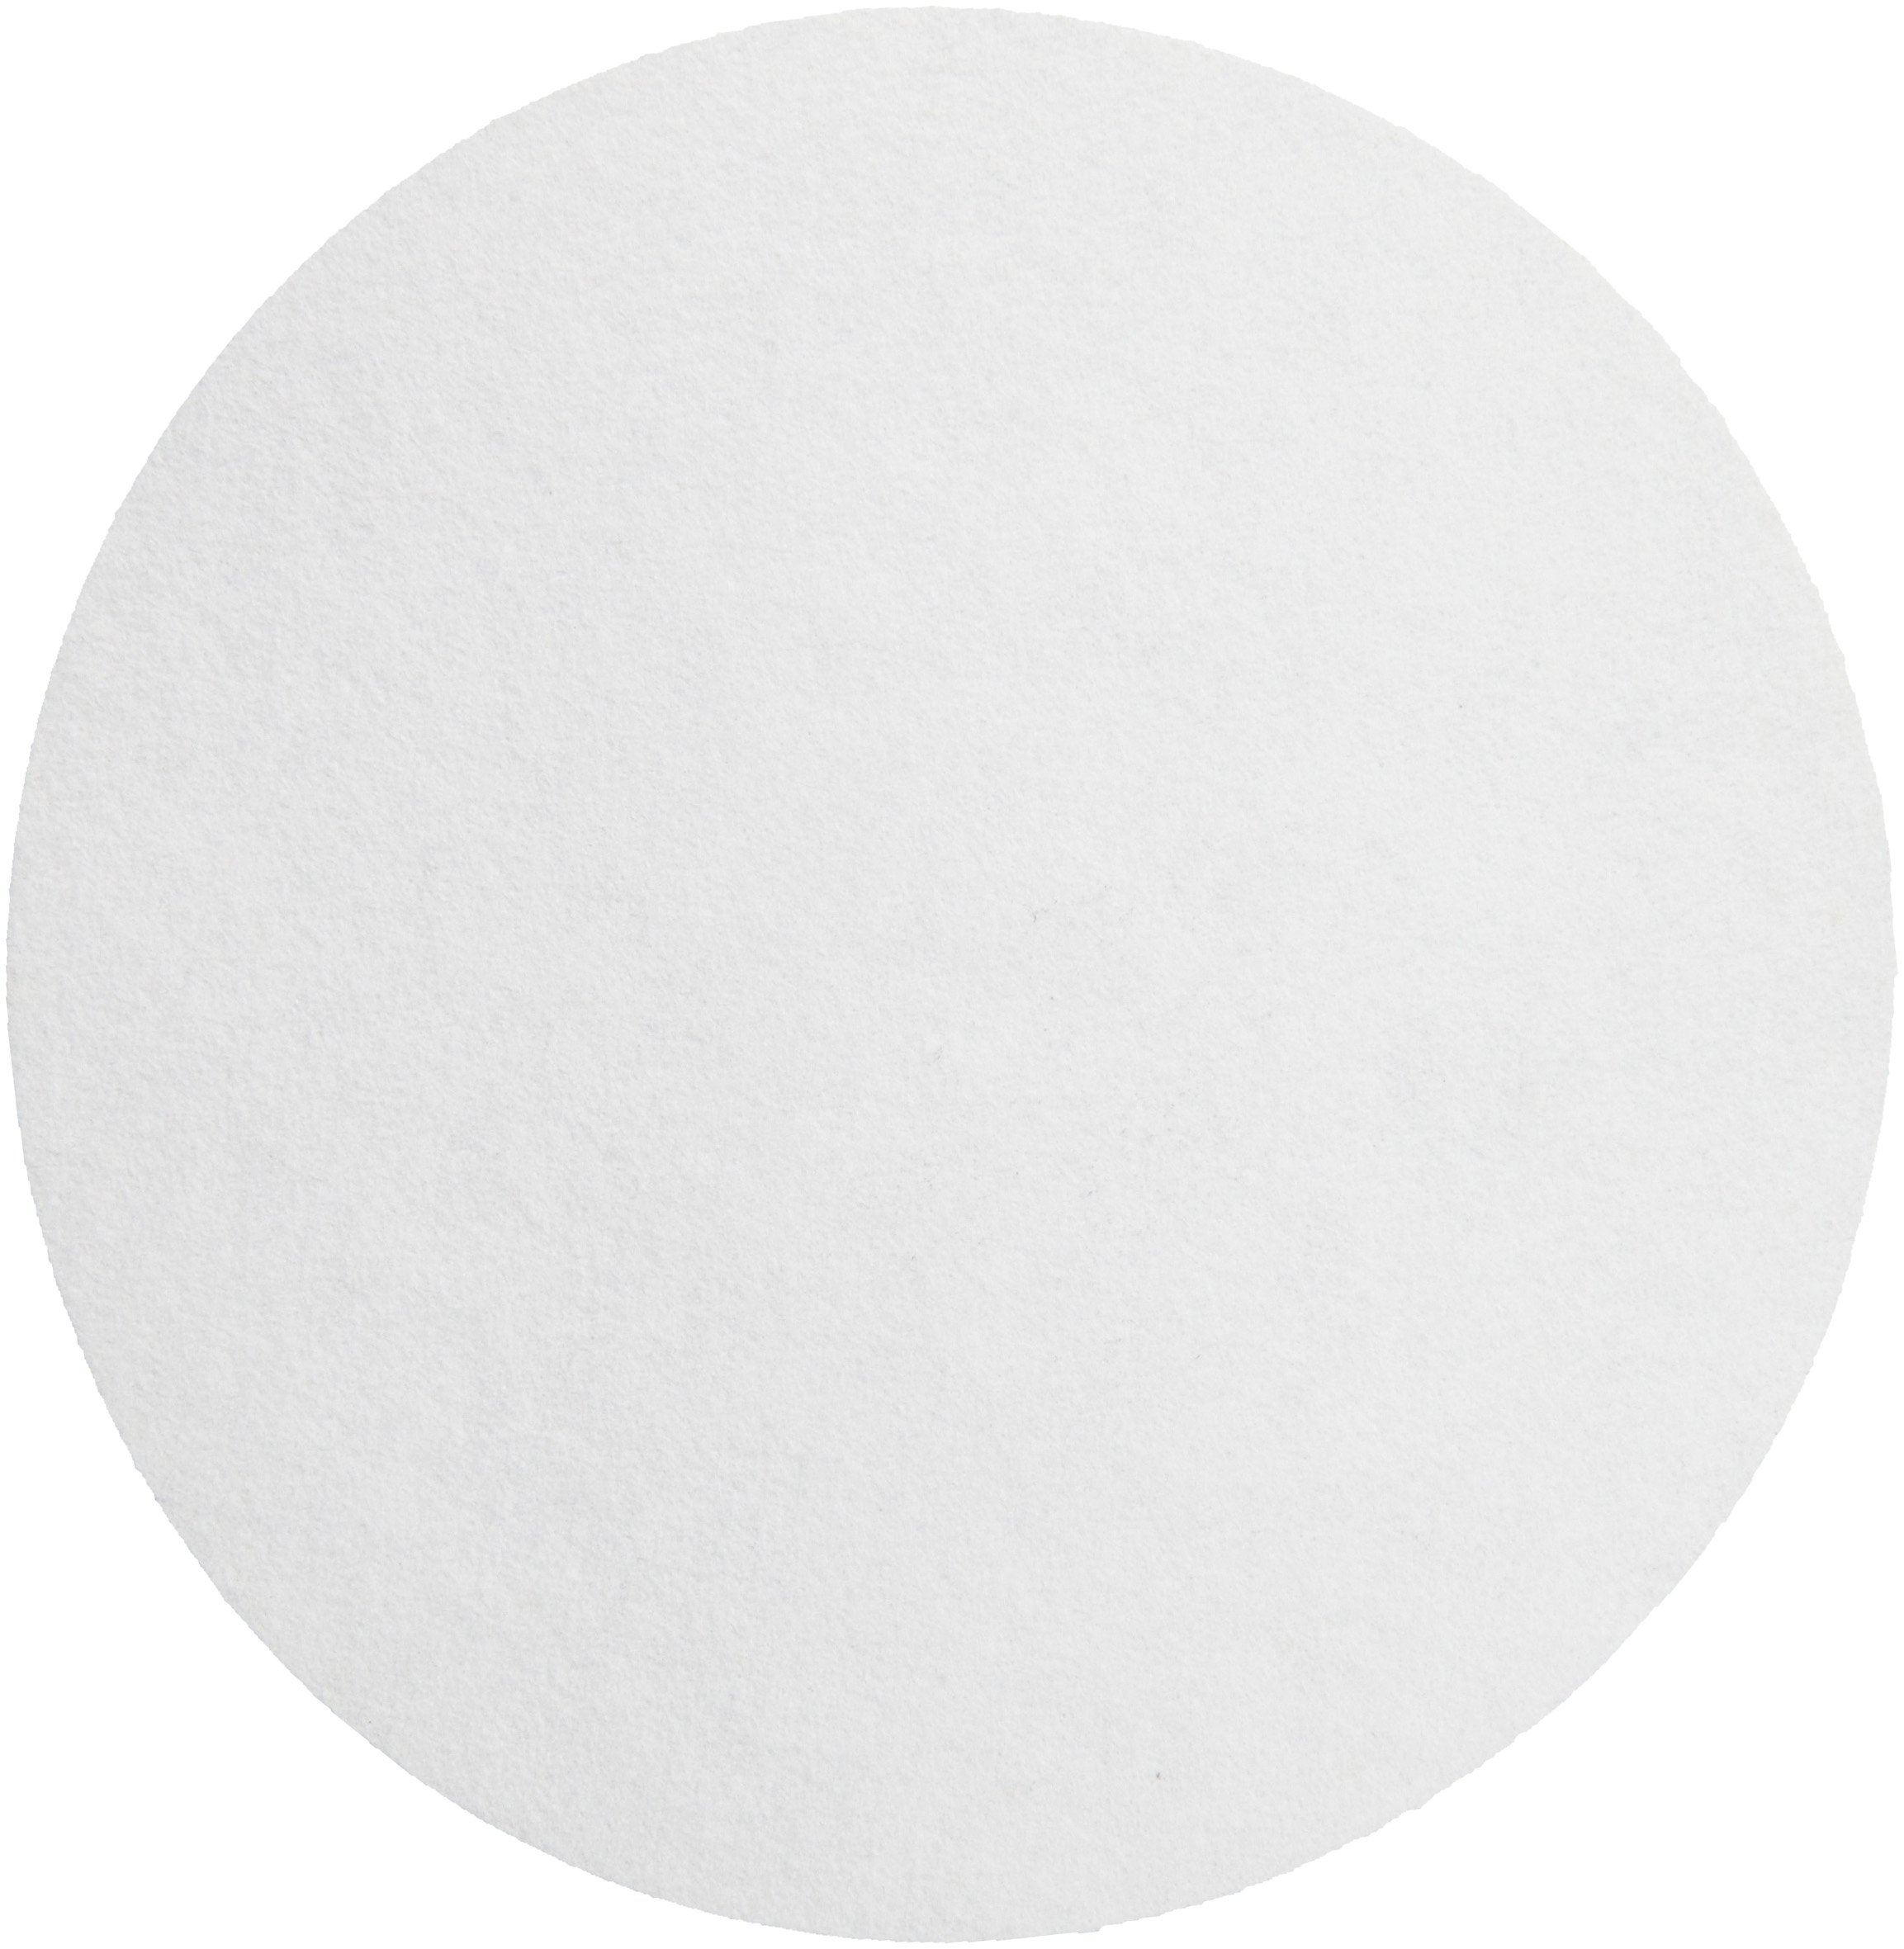 Whatman 1541-055 Hardened Ashless Quantitative Filter Paper, 5.5cm Diameter, 22 Micron, Grade 541 (Pack of 100) by Whatman